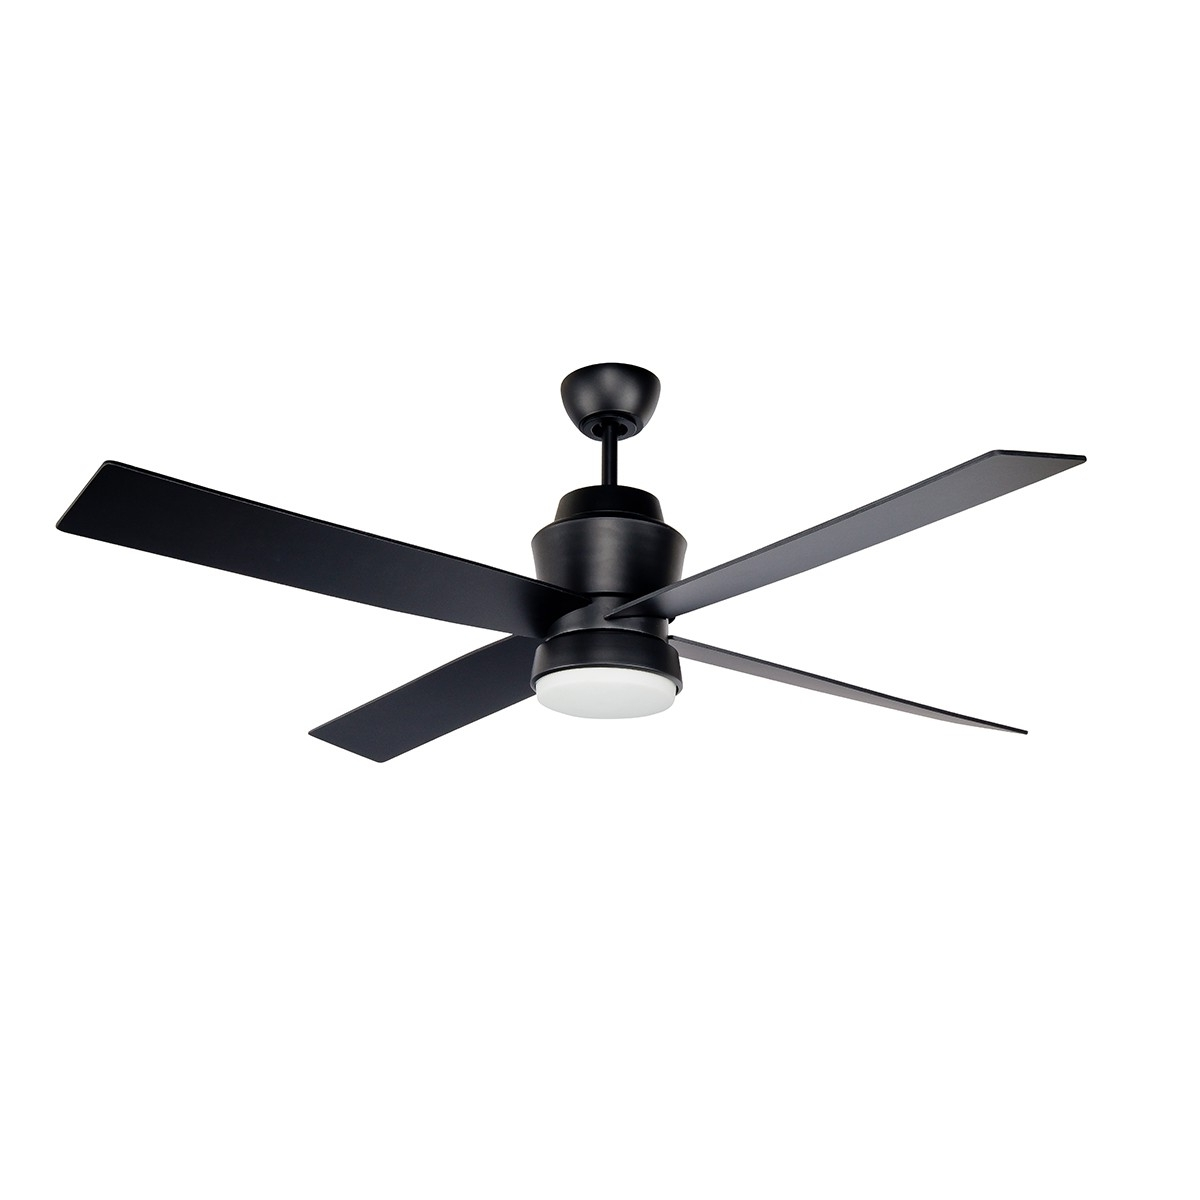 Outdoor Ceiling Fans For Wet Locations Regarding Newest Prologue Outdoor Ceiling Fan :: Stori Modern (View 4 of 20)